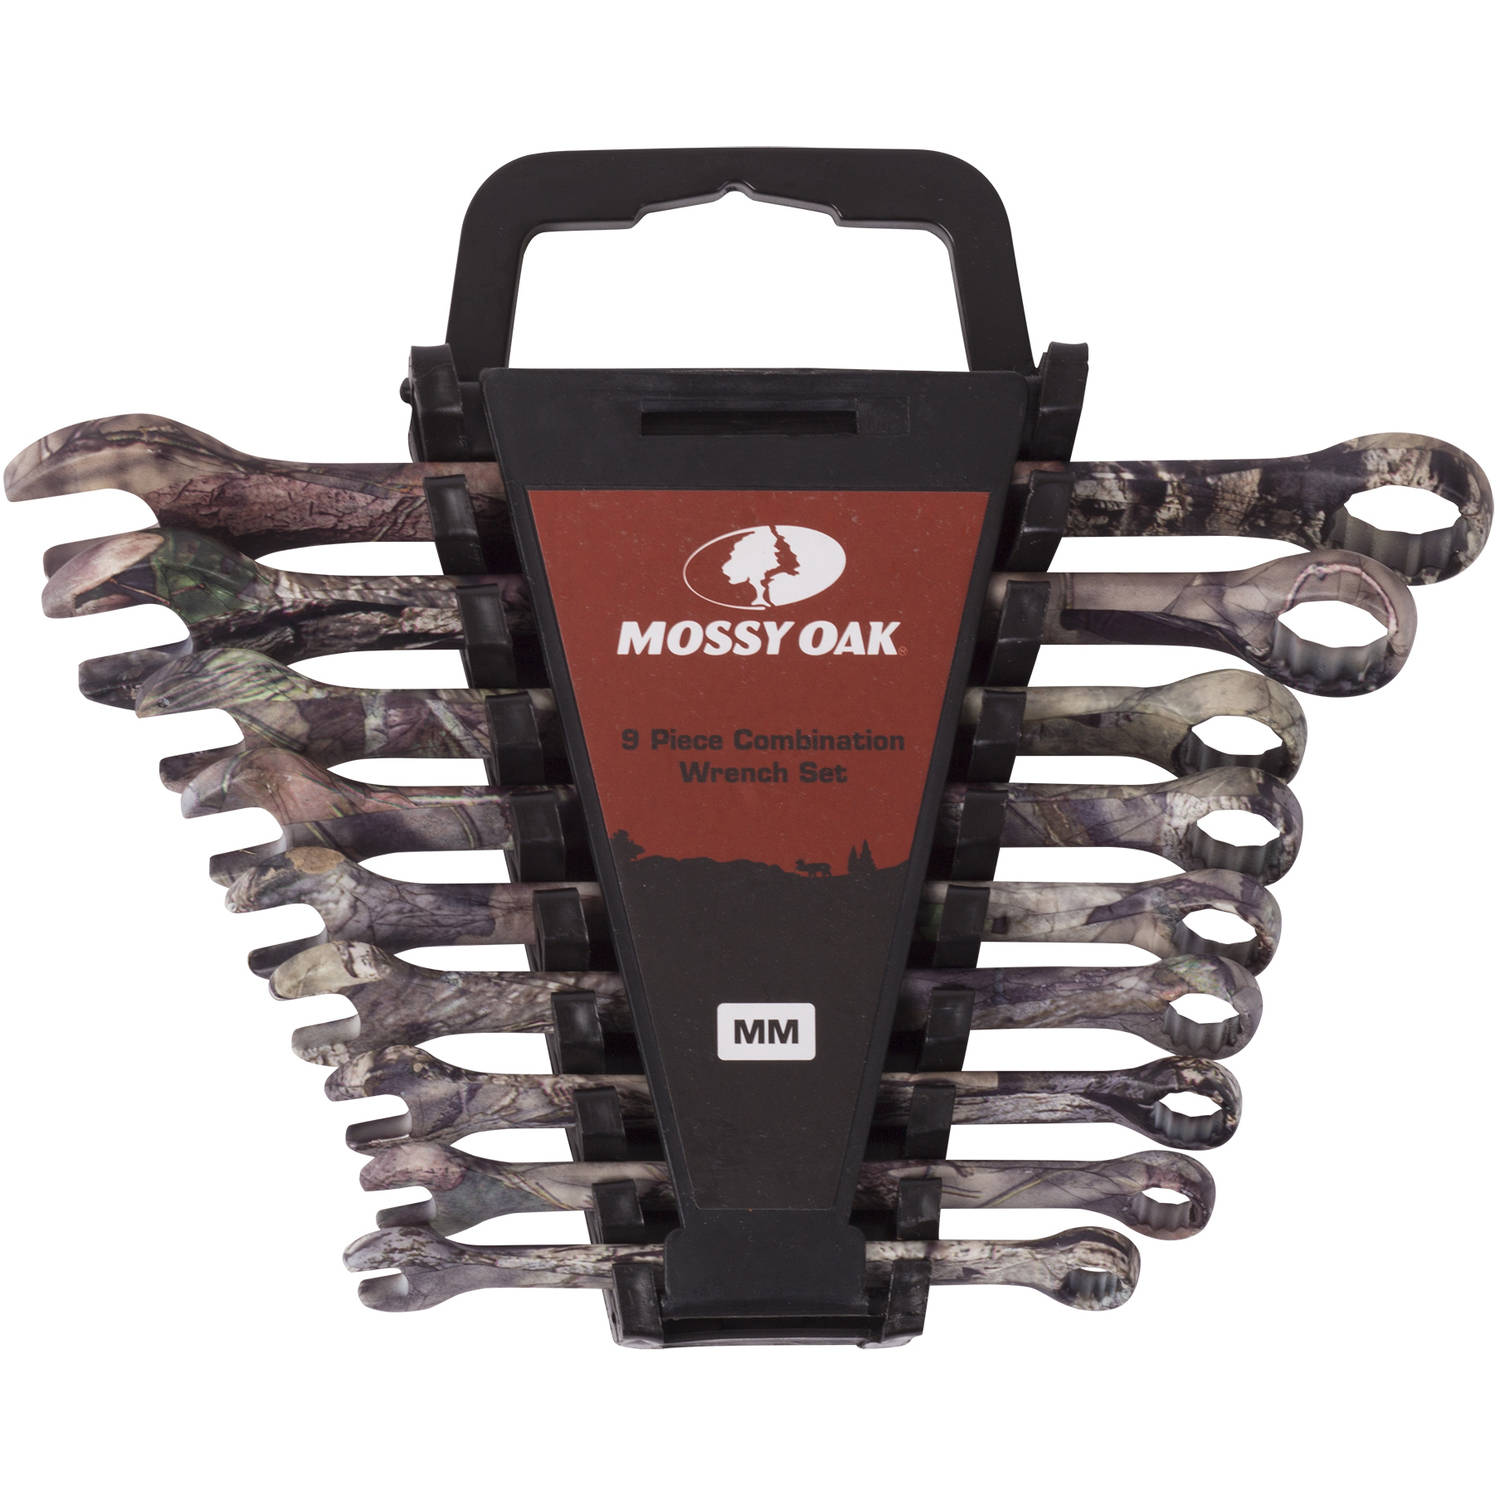 Mossy Oak 9-Piece Combination Wrench Set, Metric